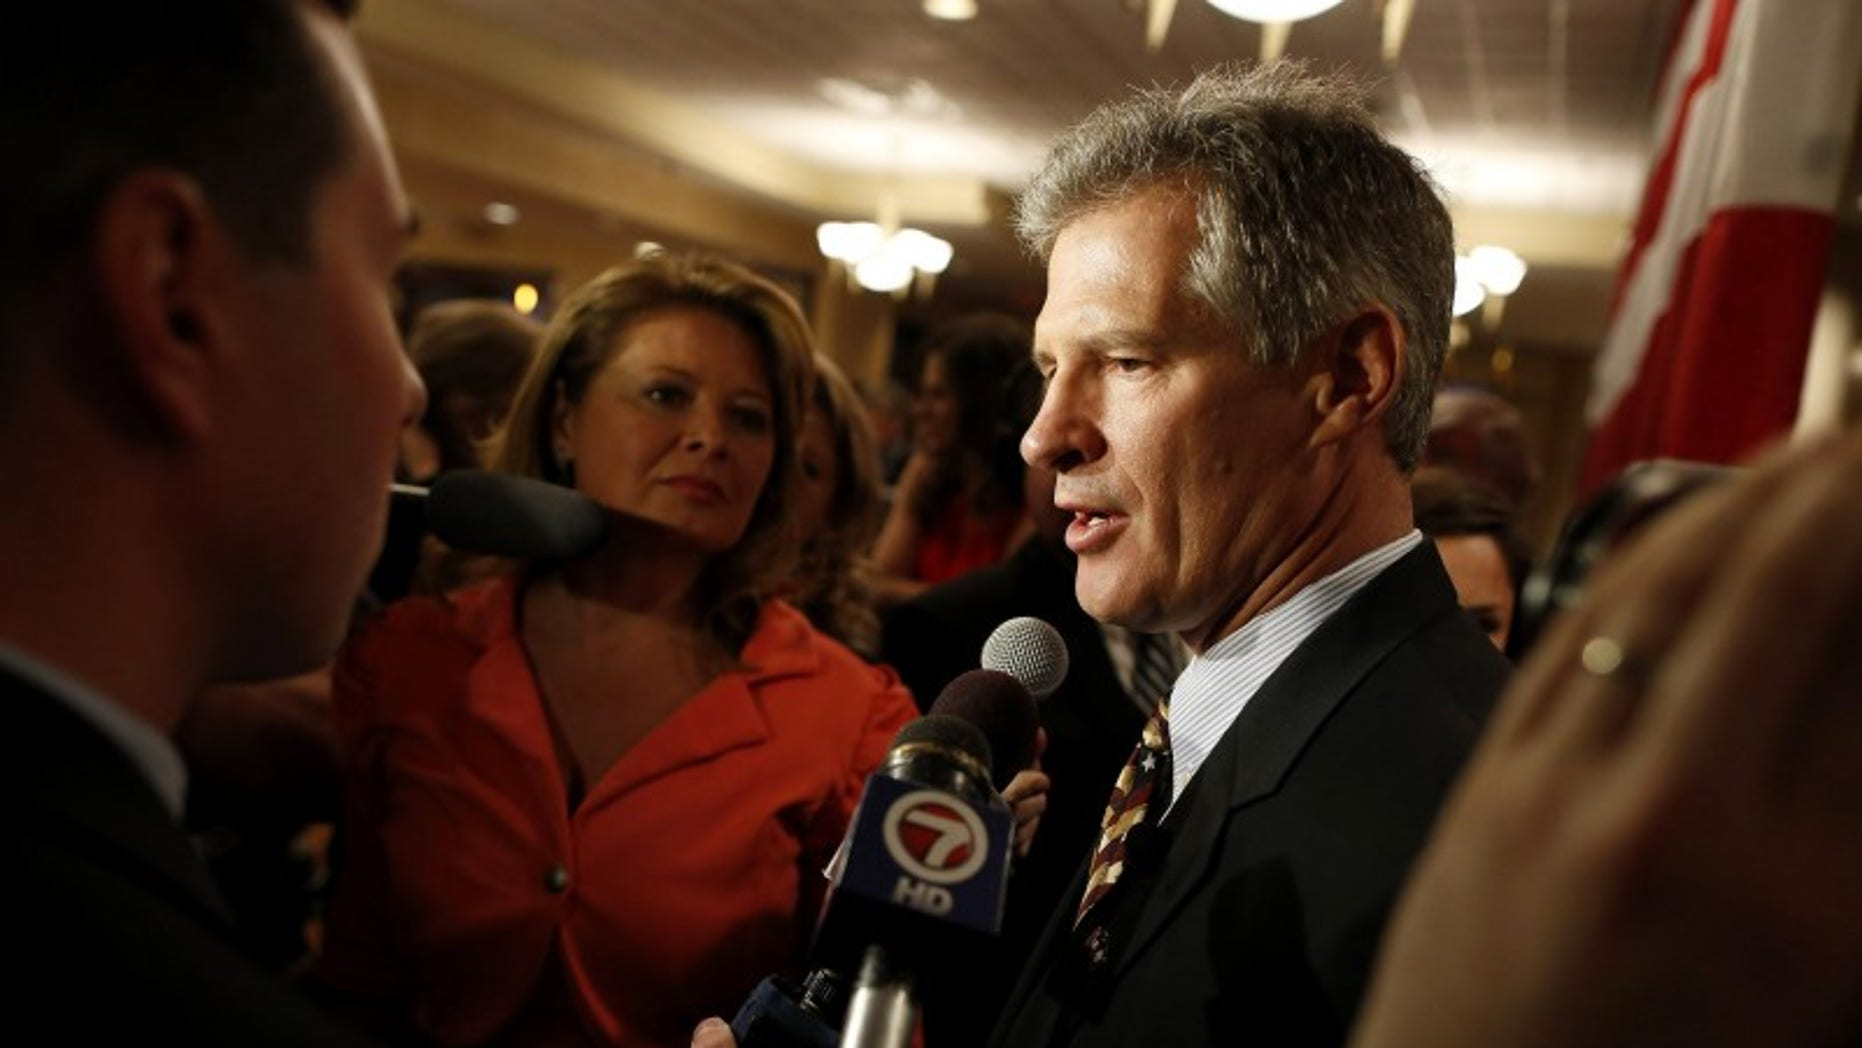 Republican Scott Brown talks to the media after announcing his bid for the United States Senate primary election in Portsmouth, N.H., April 10, 2014. (REUTERS/Dominick Reuter)